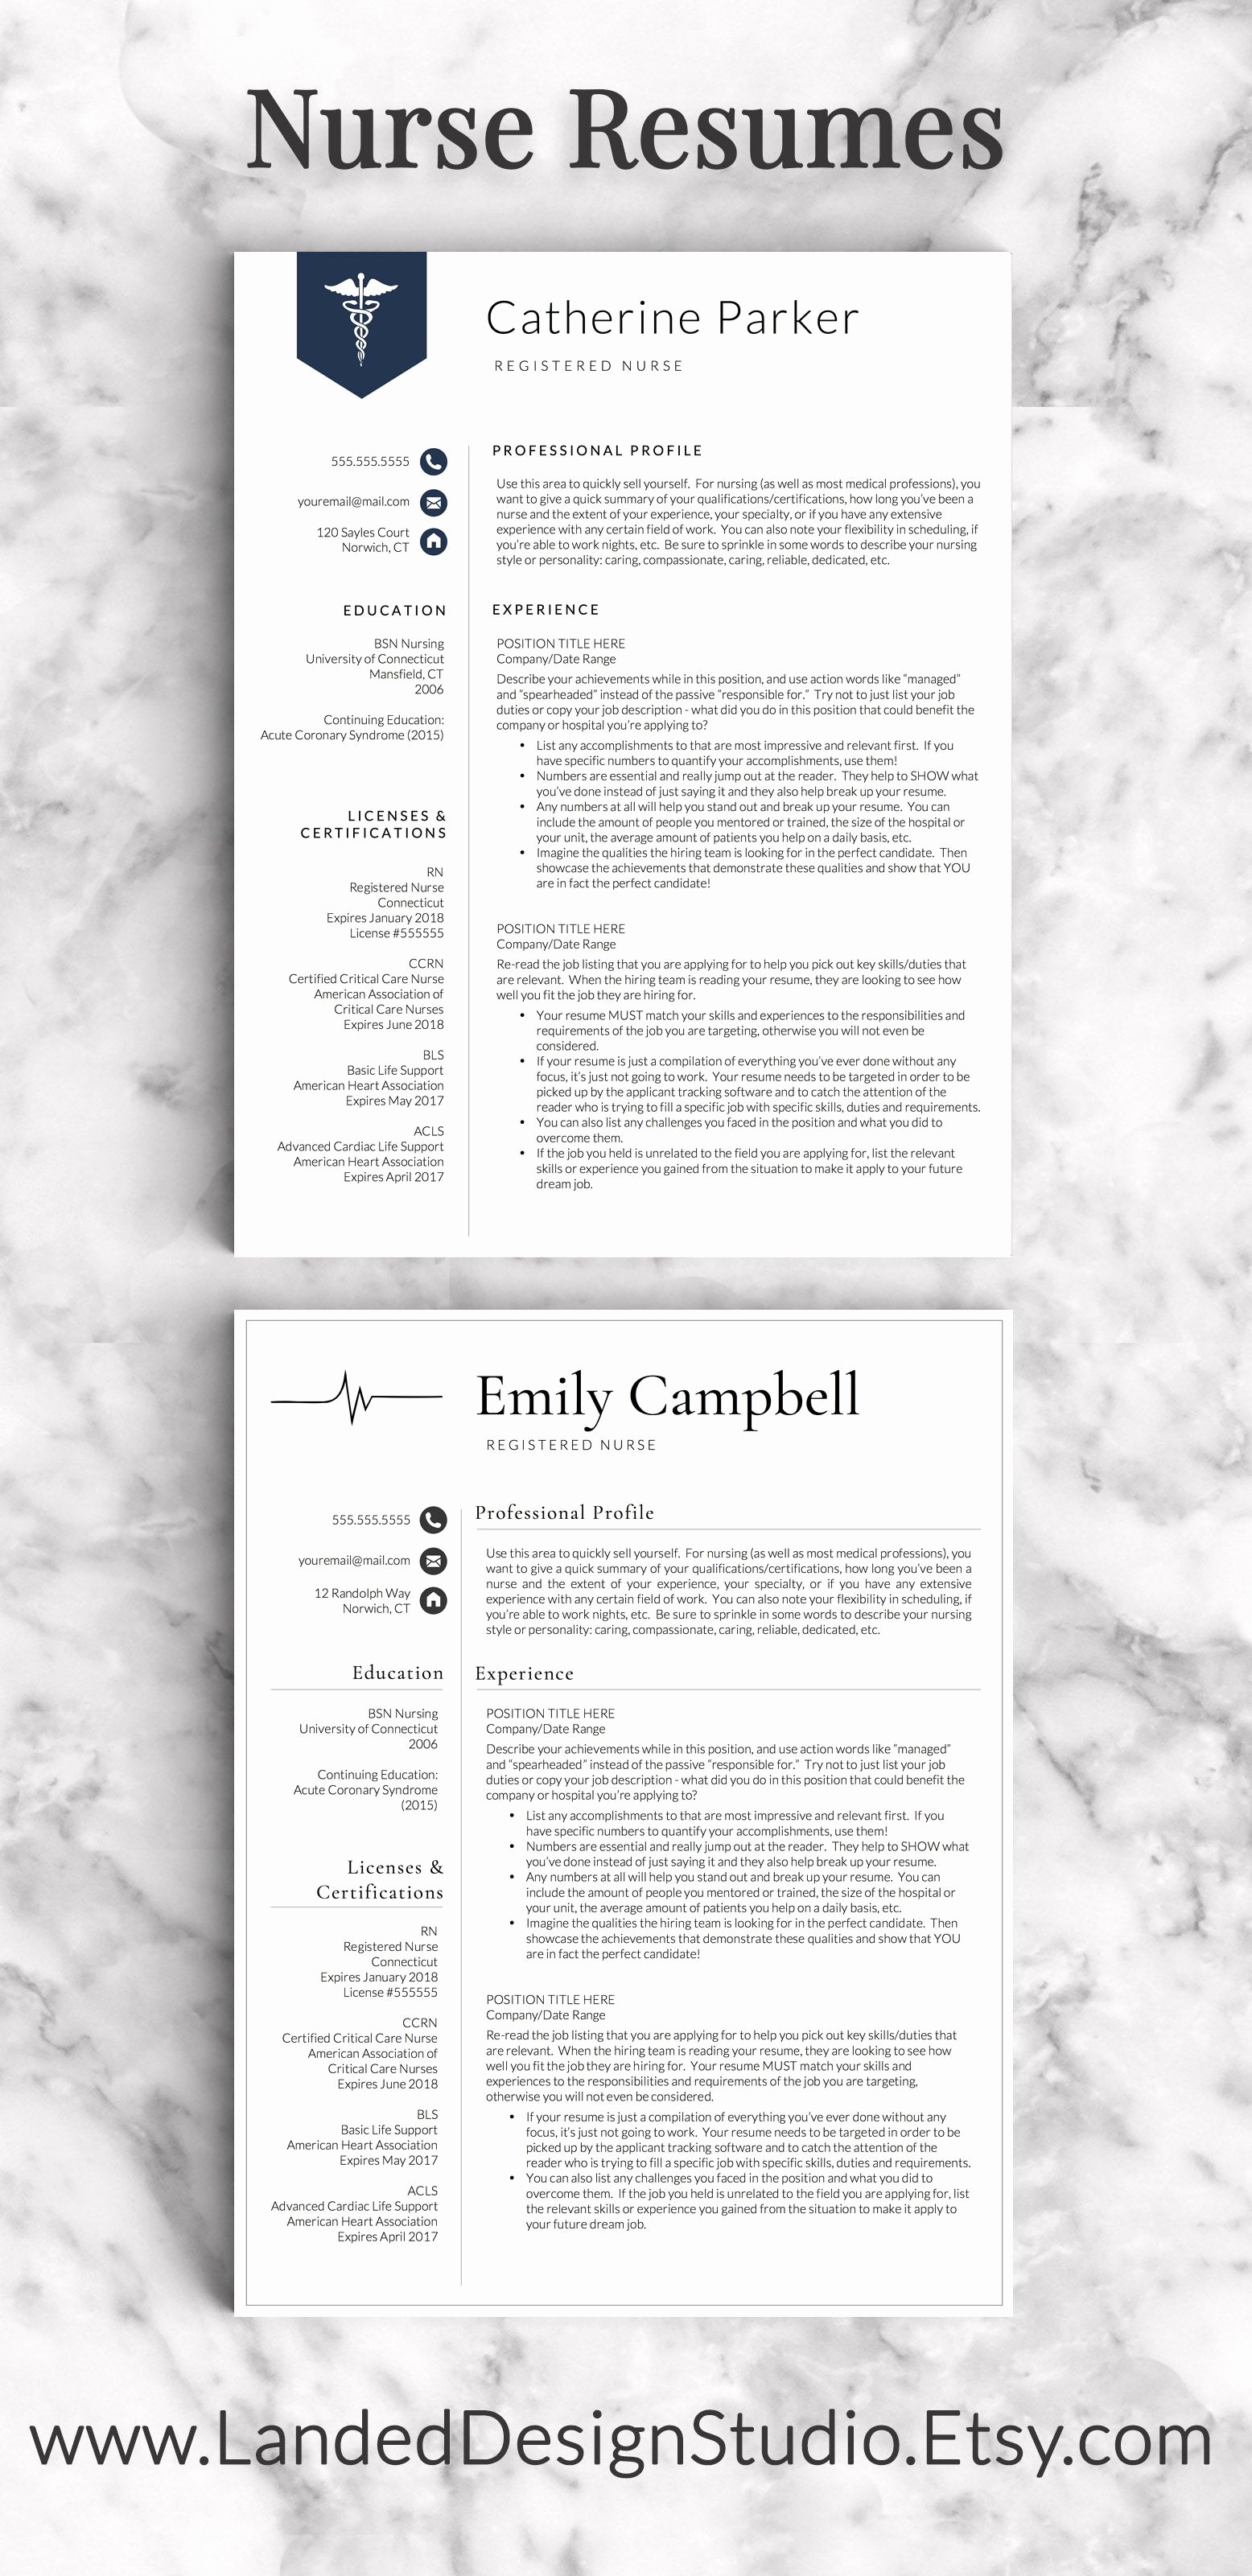 Acting Resume Template Word - Acting Resume Sample Fresh Actor Resume Template Microsoft Word